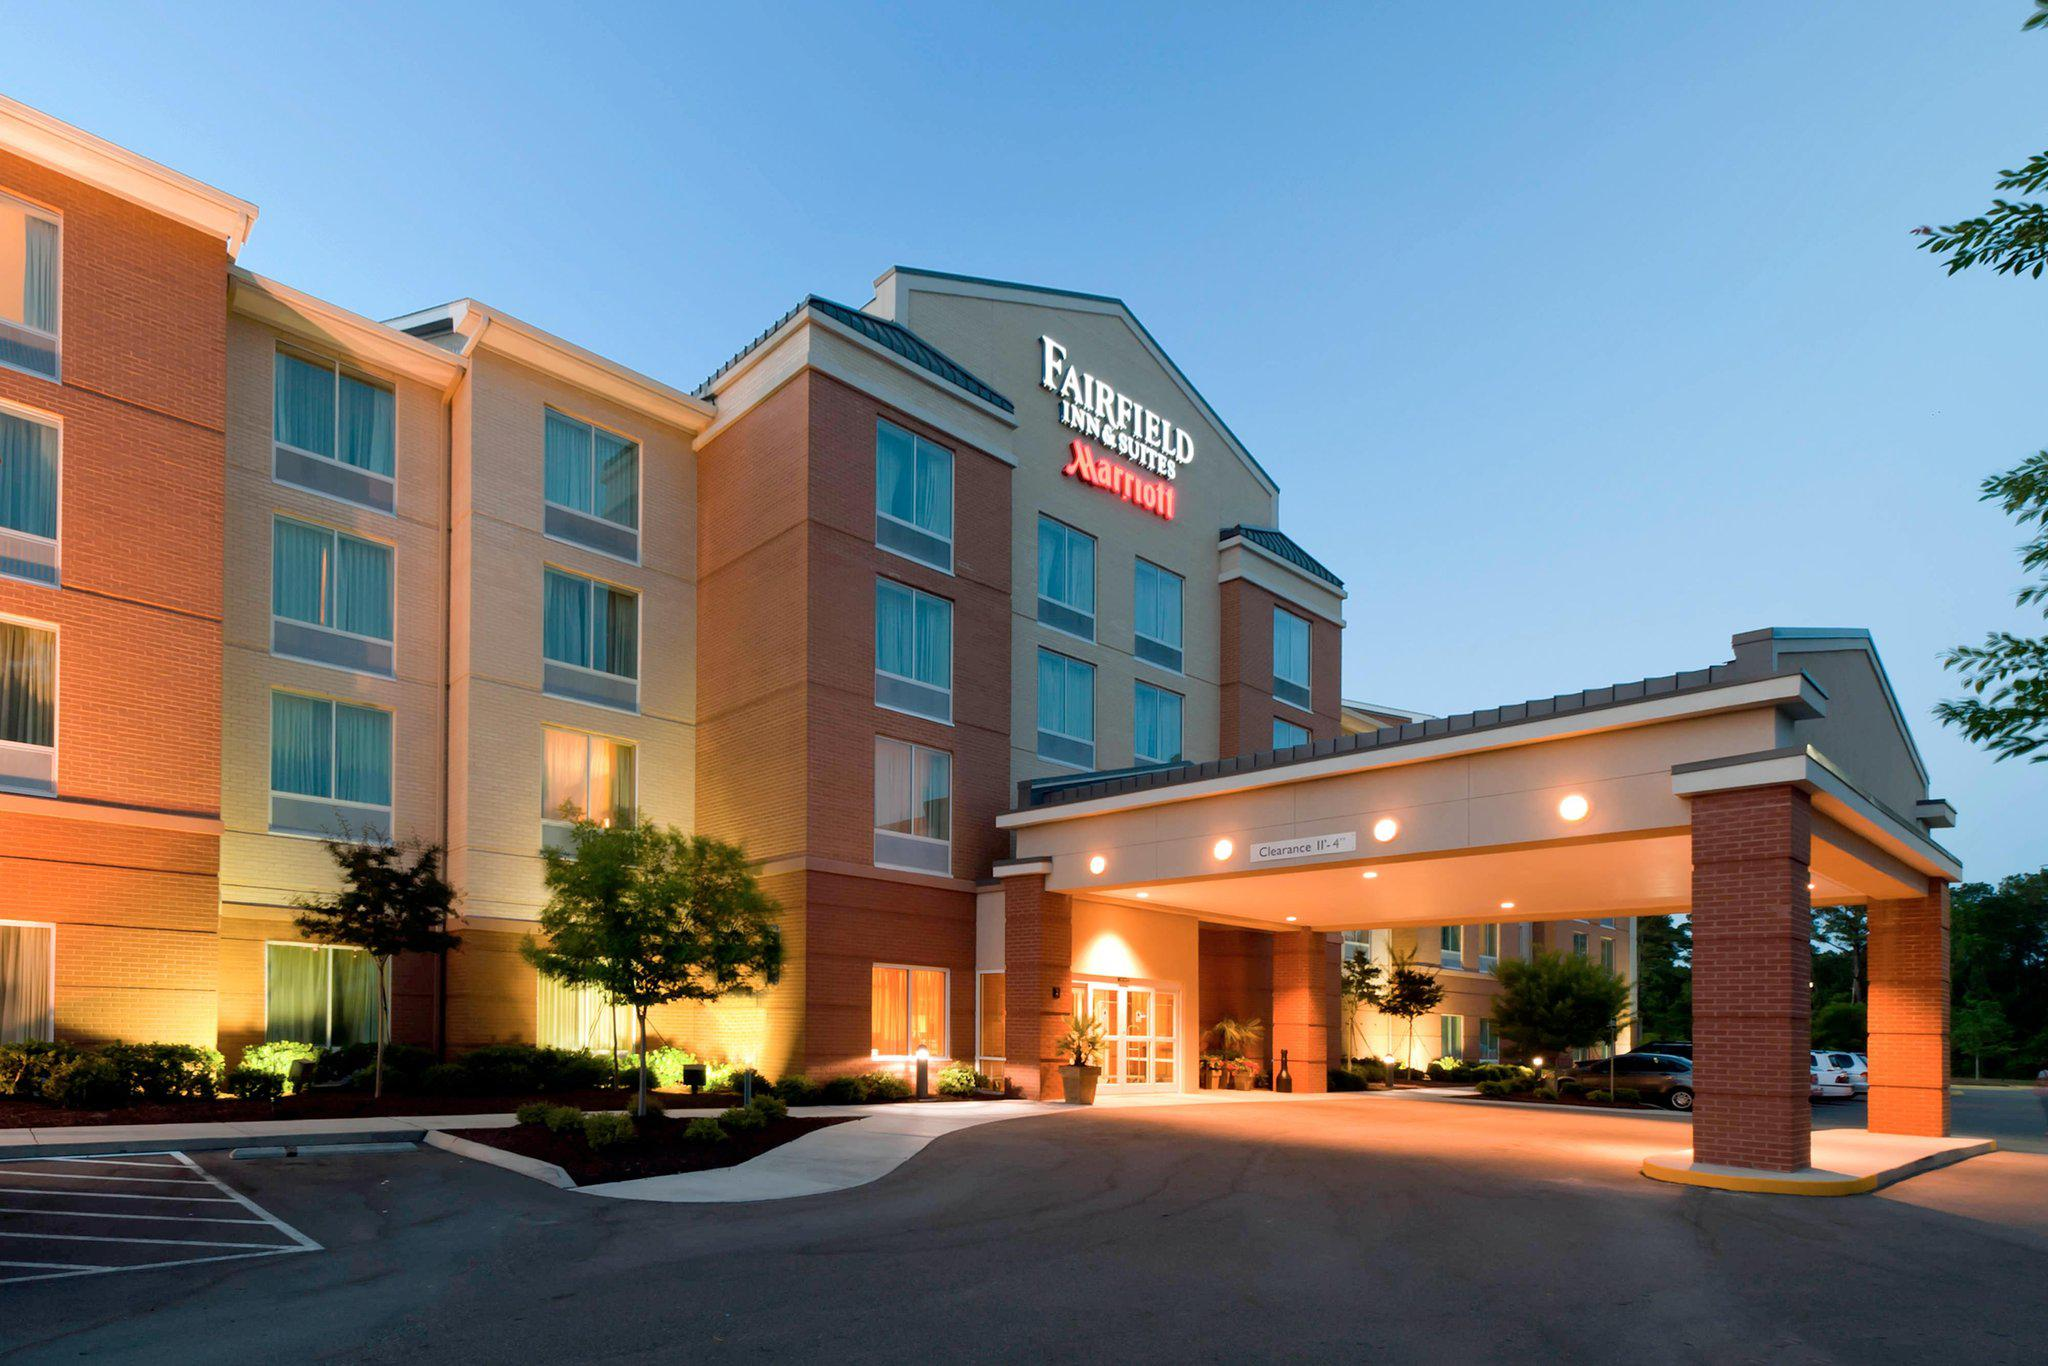 Fairfield Inn & Suites by Marriott Wilmington/Wrightsville Beach